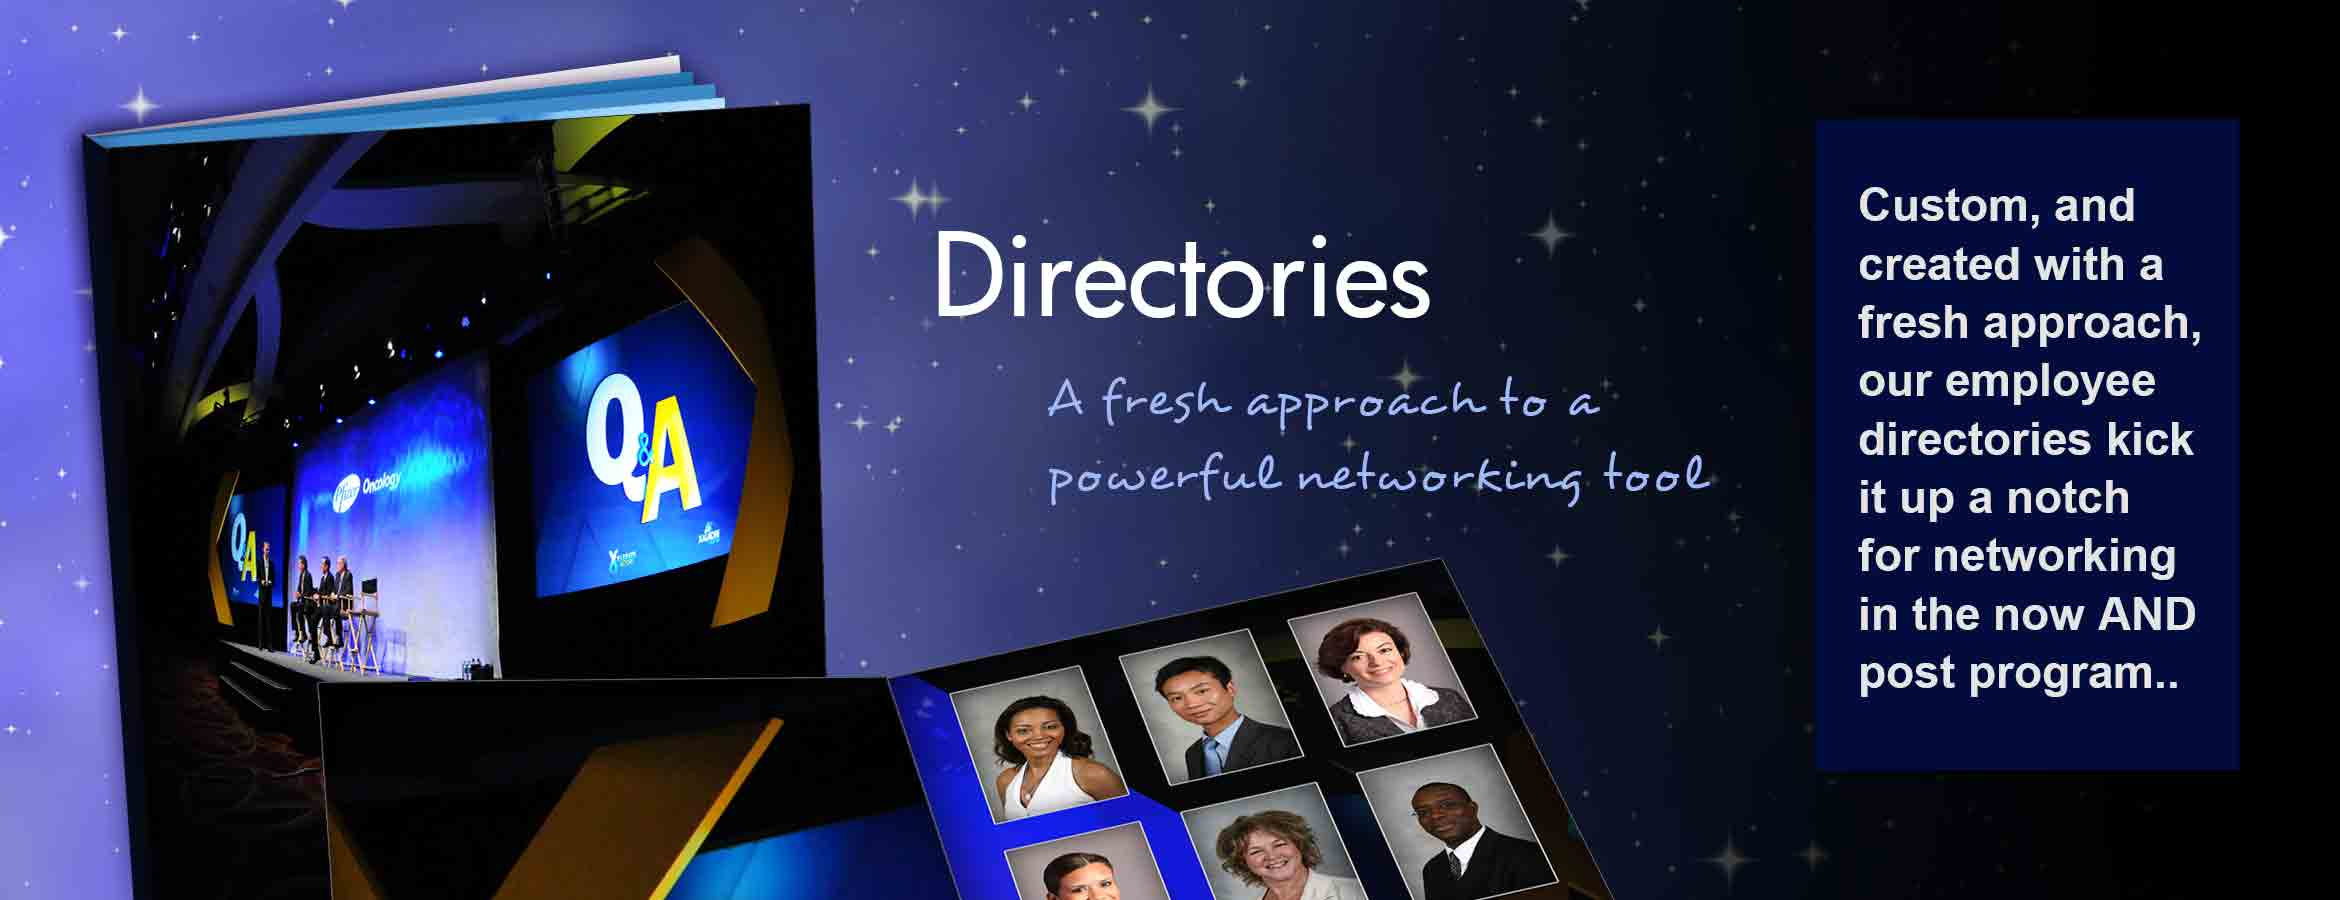 solution highlights business directories go11